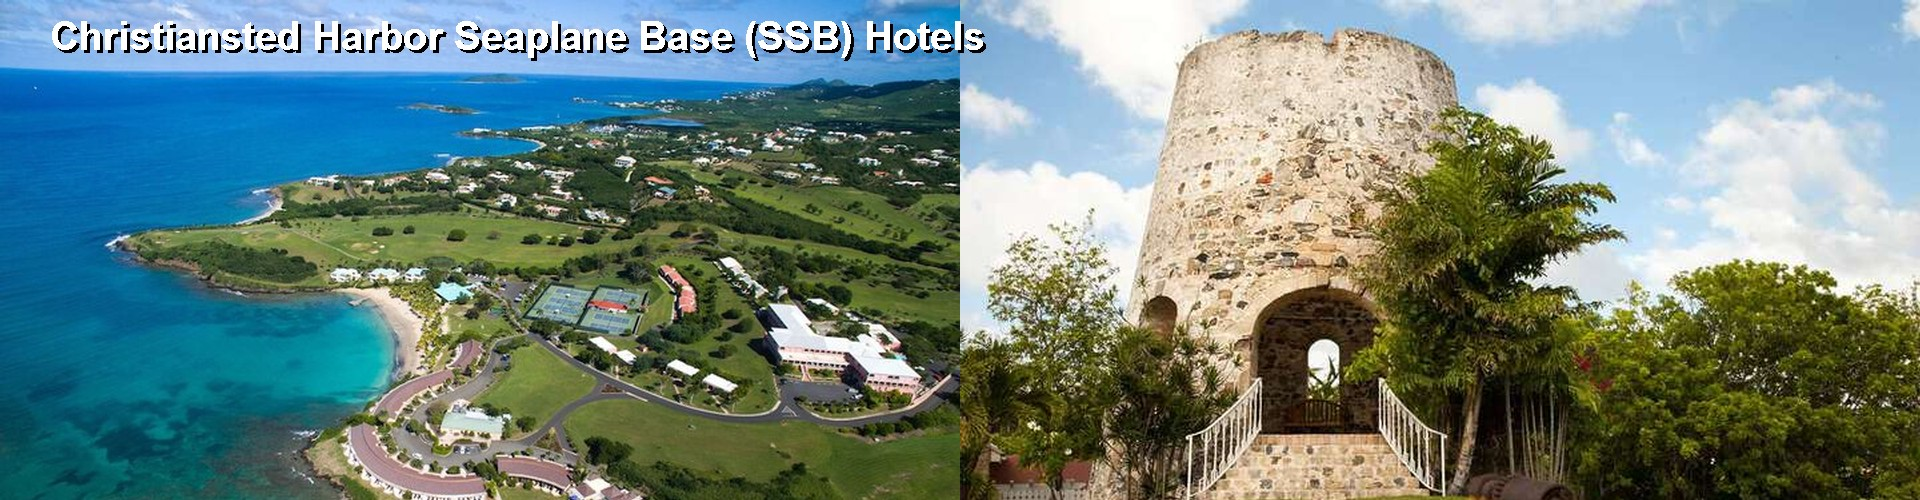 5 Best Hotels near Christiansted Harbor Seaplane Base (SSB)